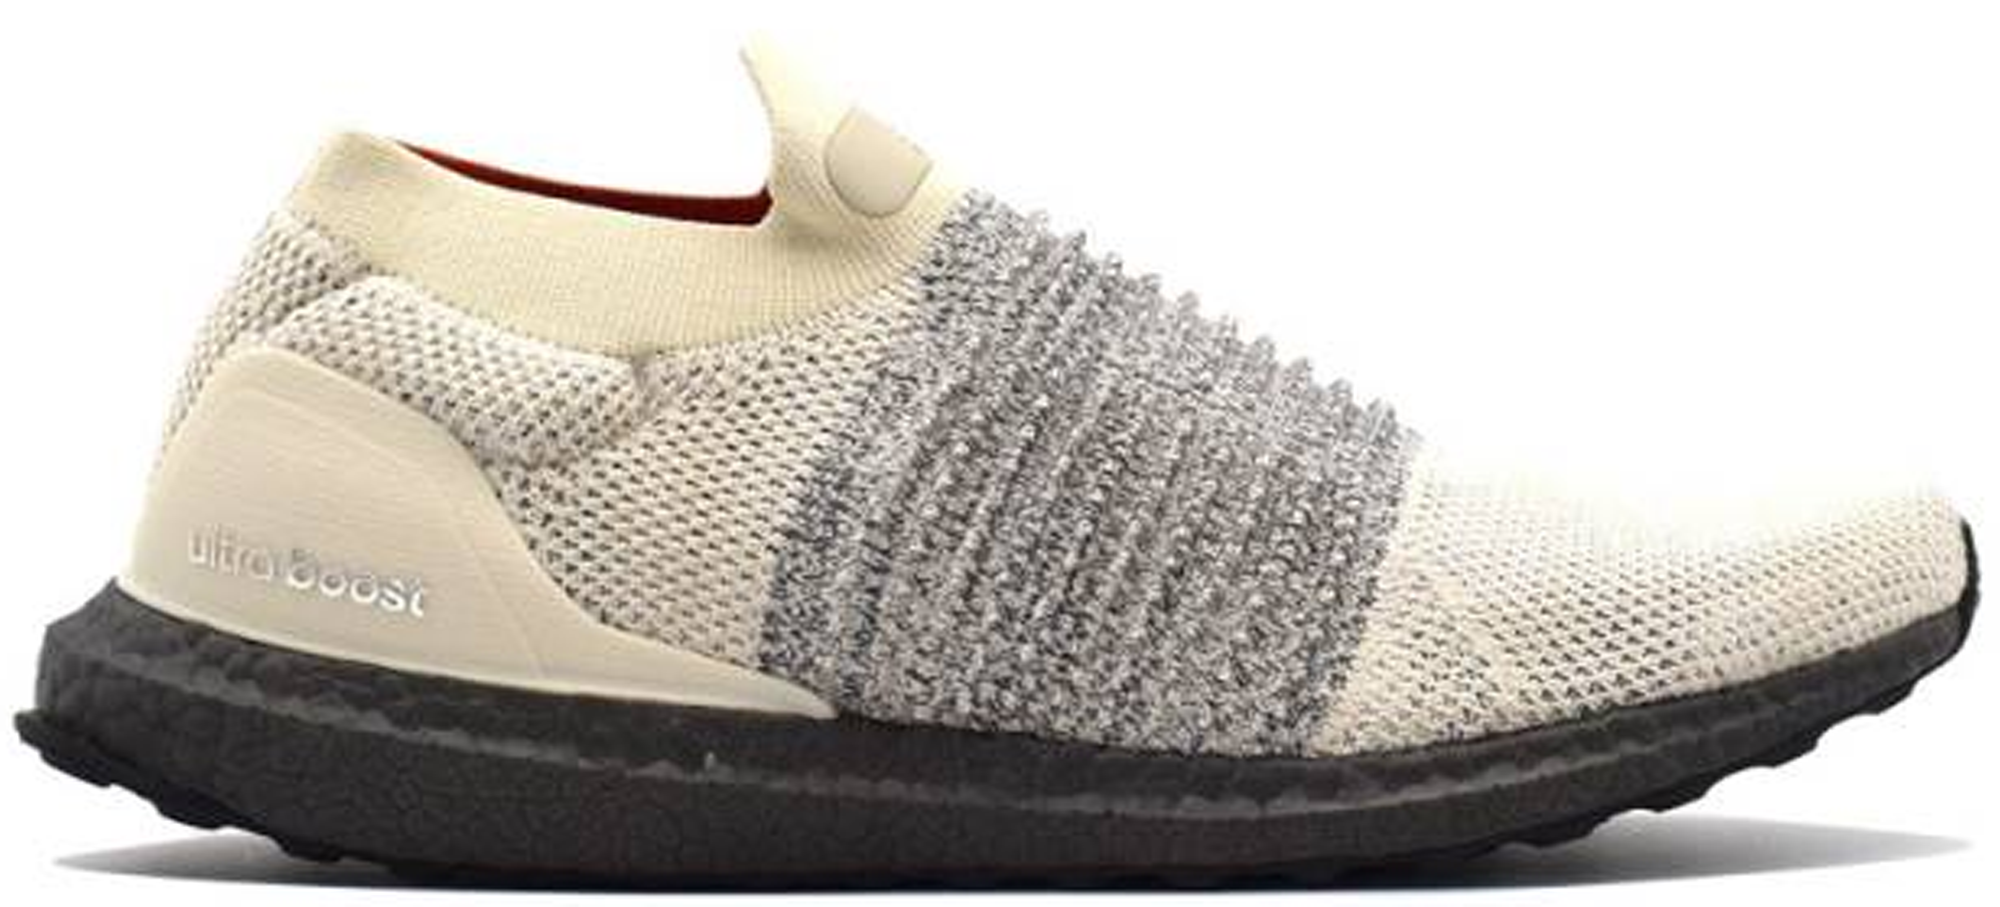 0432742a7 adidas ultra boost laceless adidas Ultra Boost Laceless Clear Brown ...